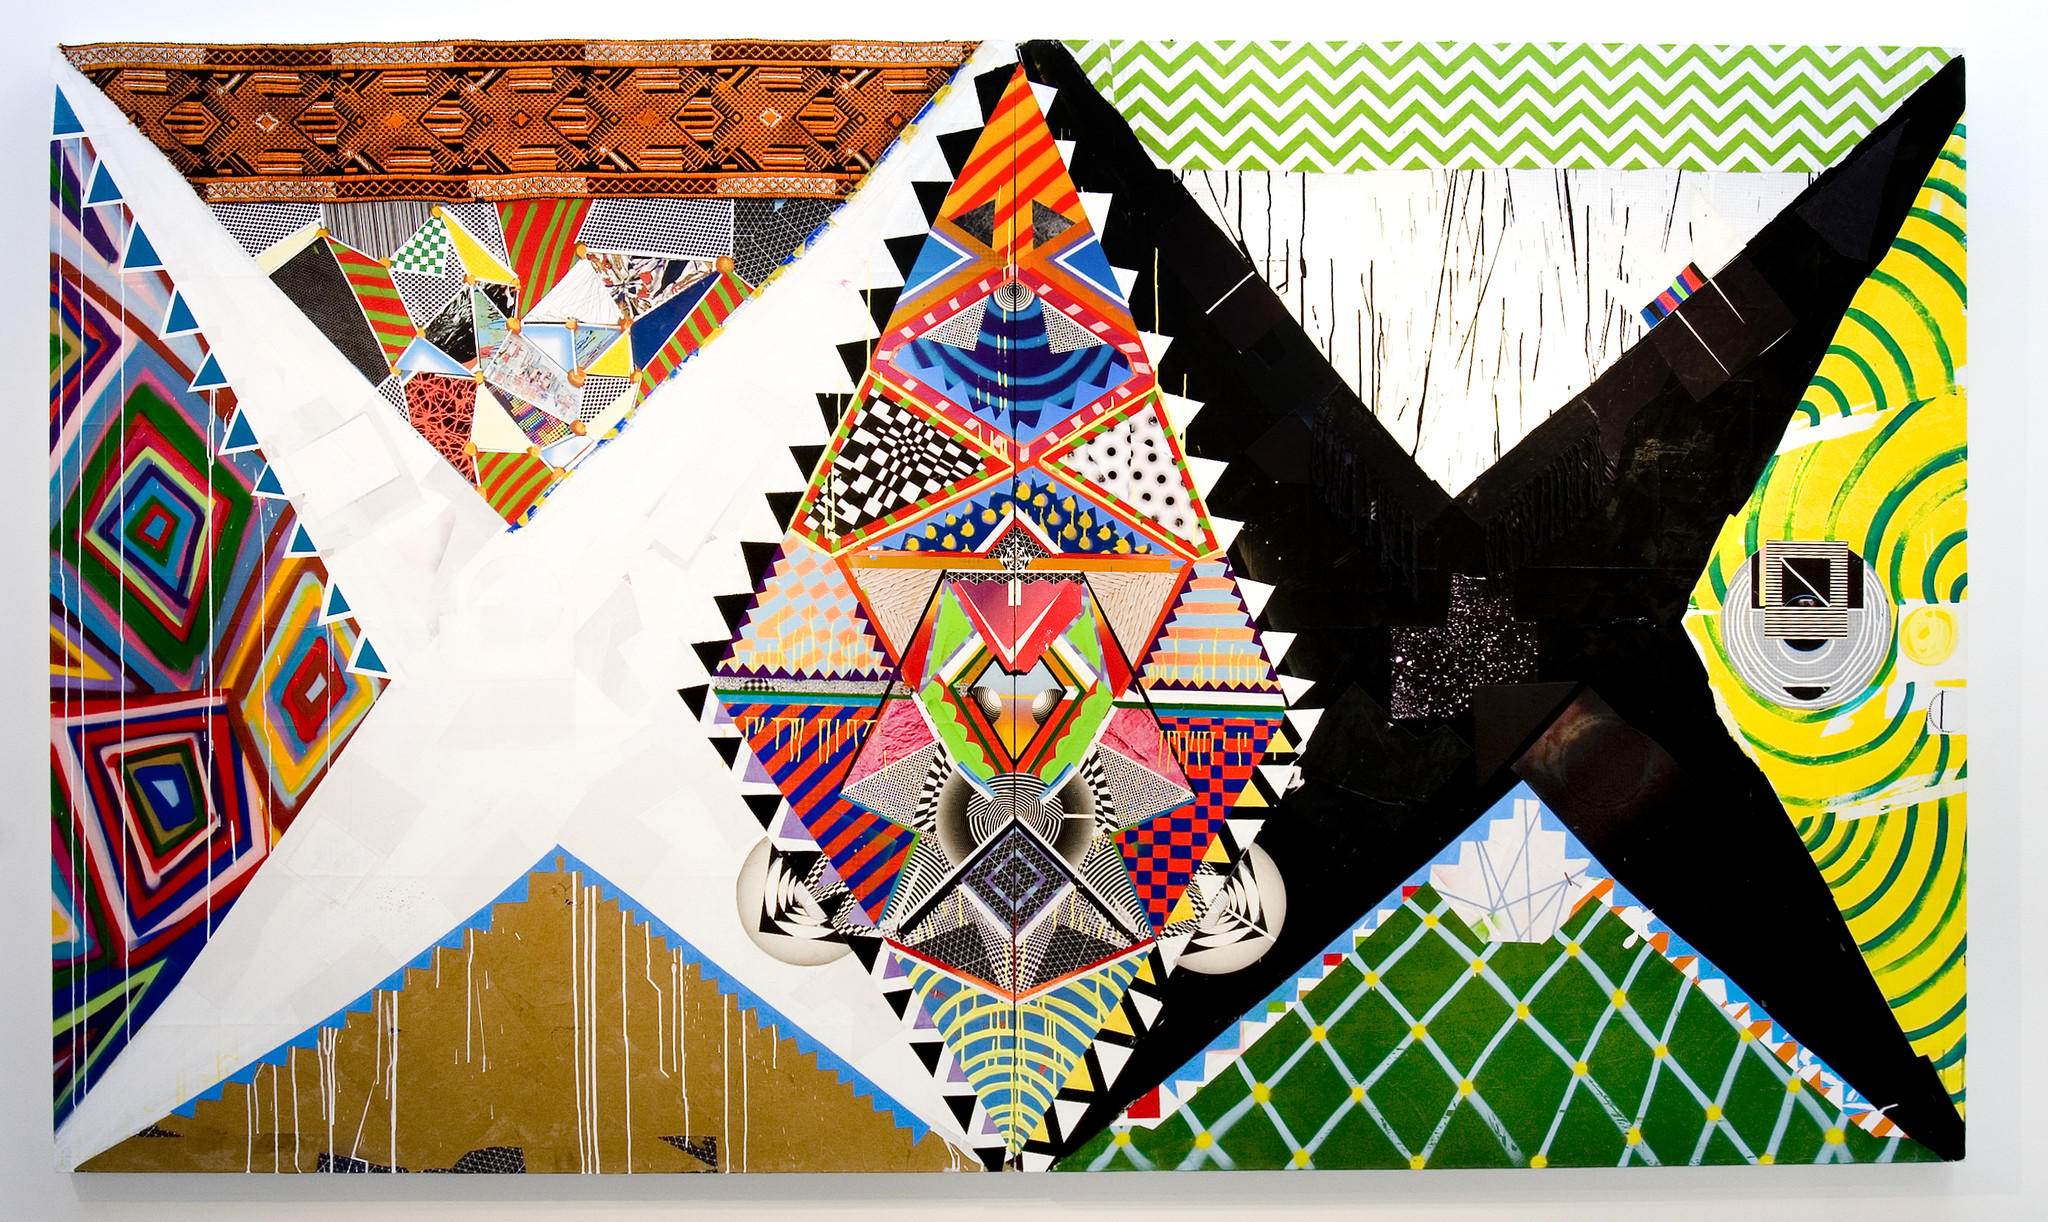 """A Brian Porray work titled """"  4Nti EV1L-EY3  ,"""" 2013, synthetic polymer, spray paint, paper, fabric and colored pencil on canvas, 80 by 136 inches."""